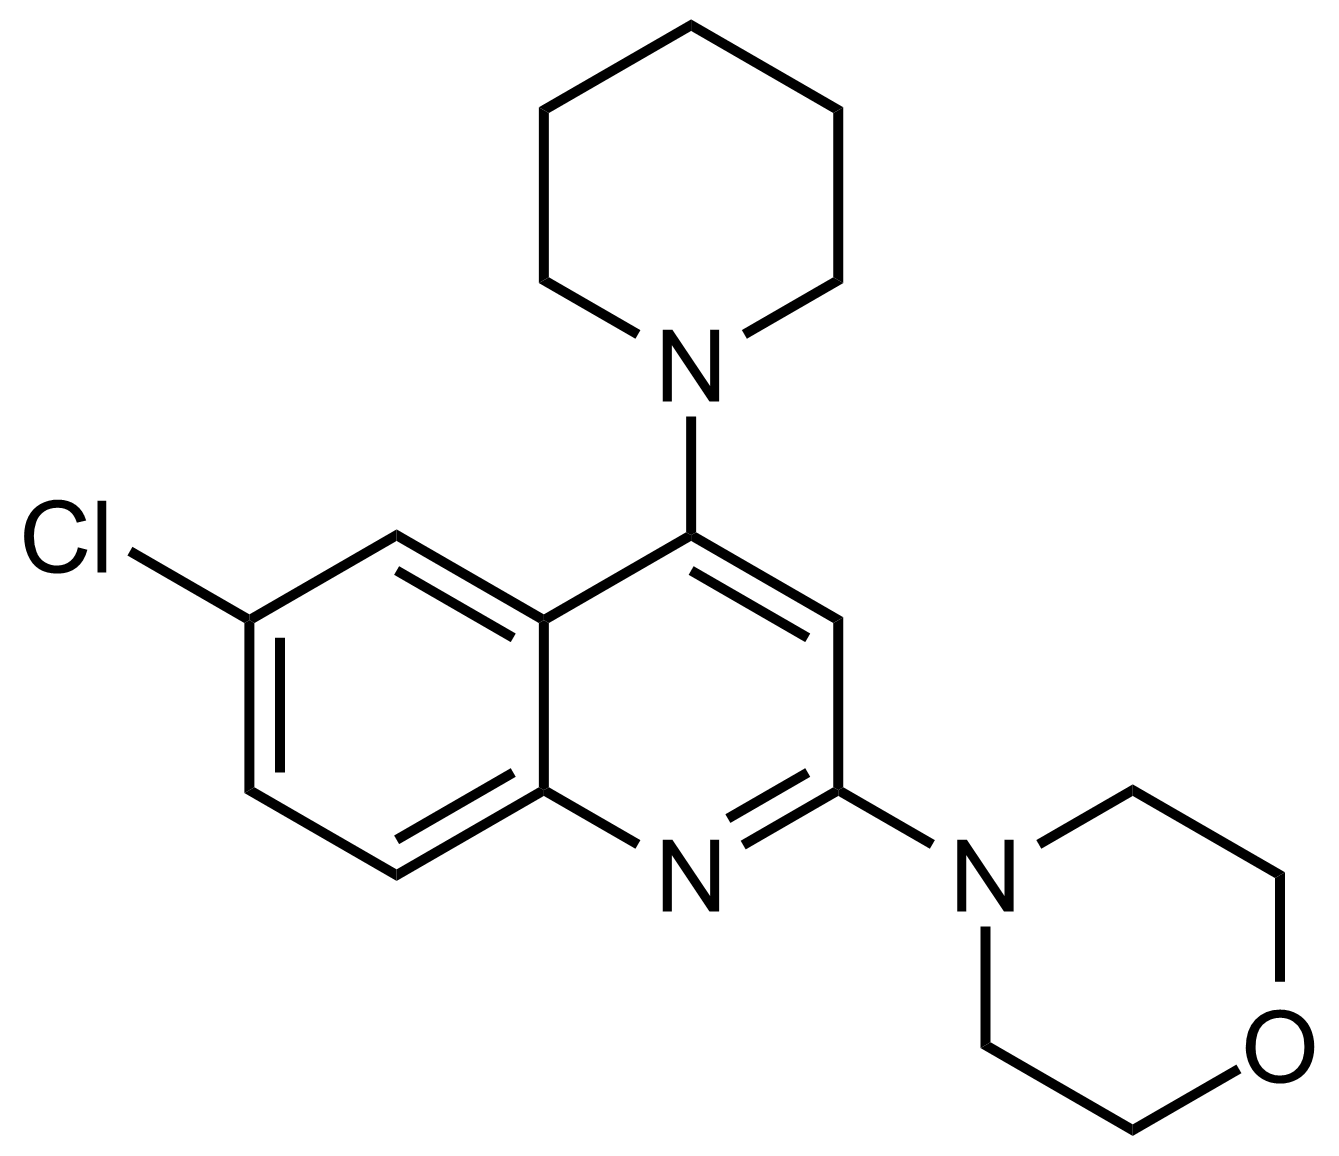 Structure of 4-(6-Chloro-4-(piperidin-1-yl)quinolin-2-yl)morpholine